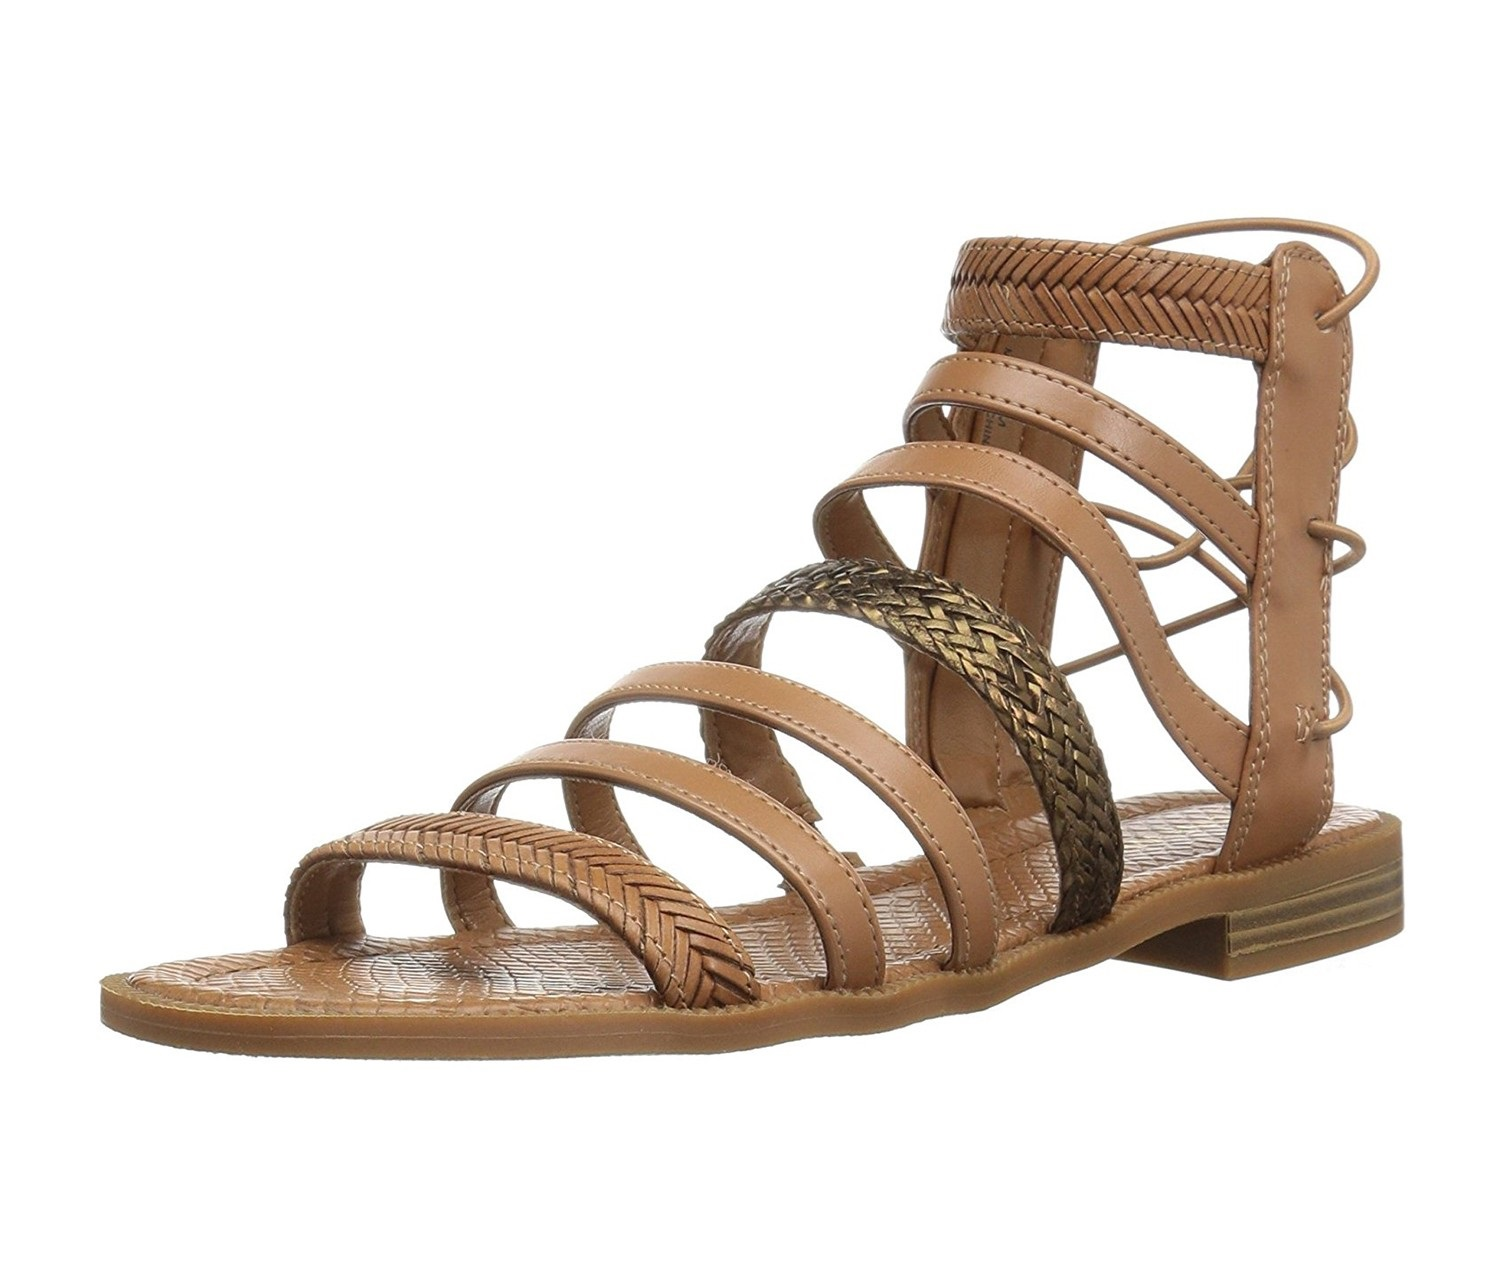 0a084dce445 Shop Nine West Women s Xema Synthetic Gladiator Sandal